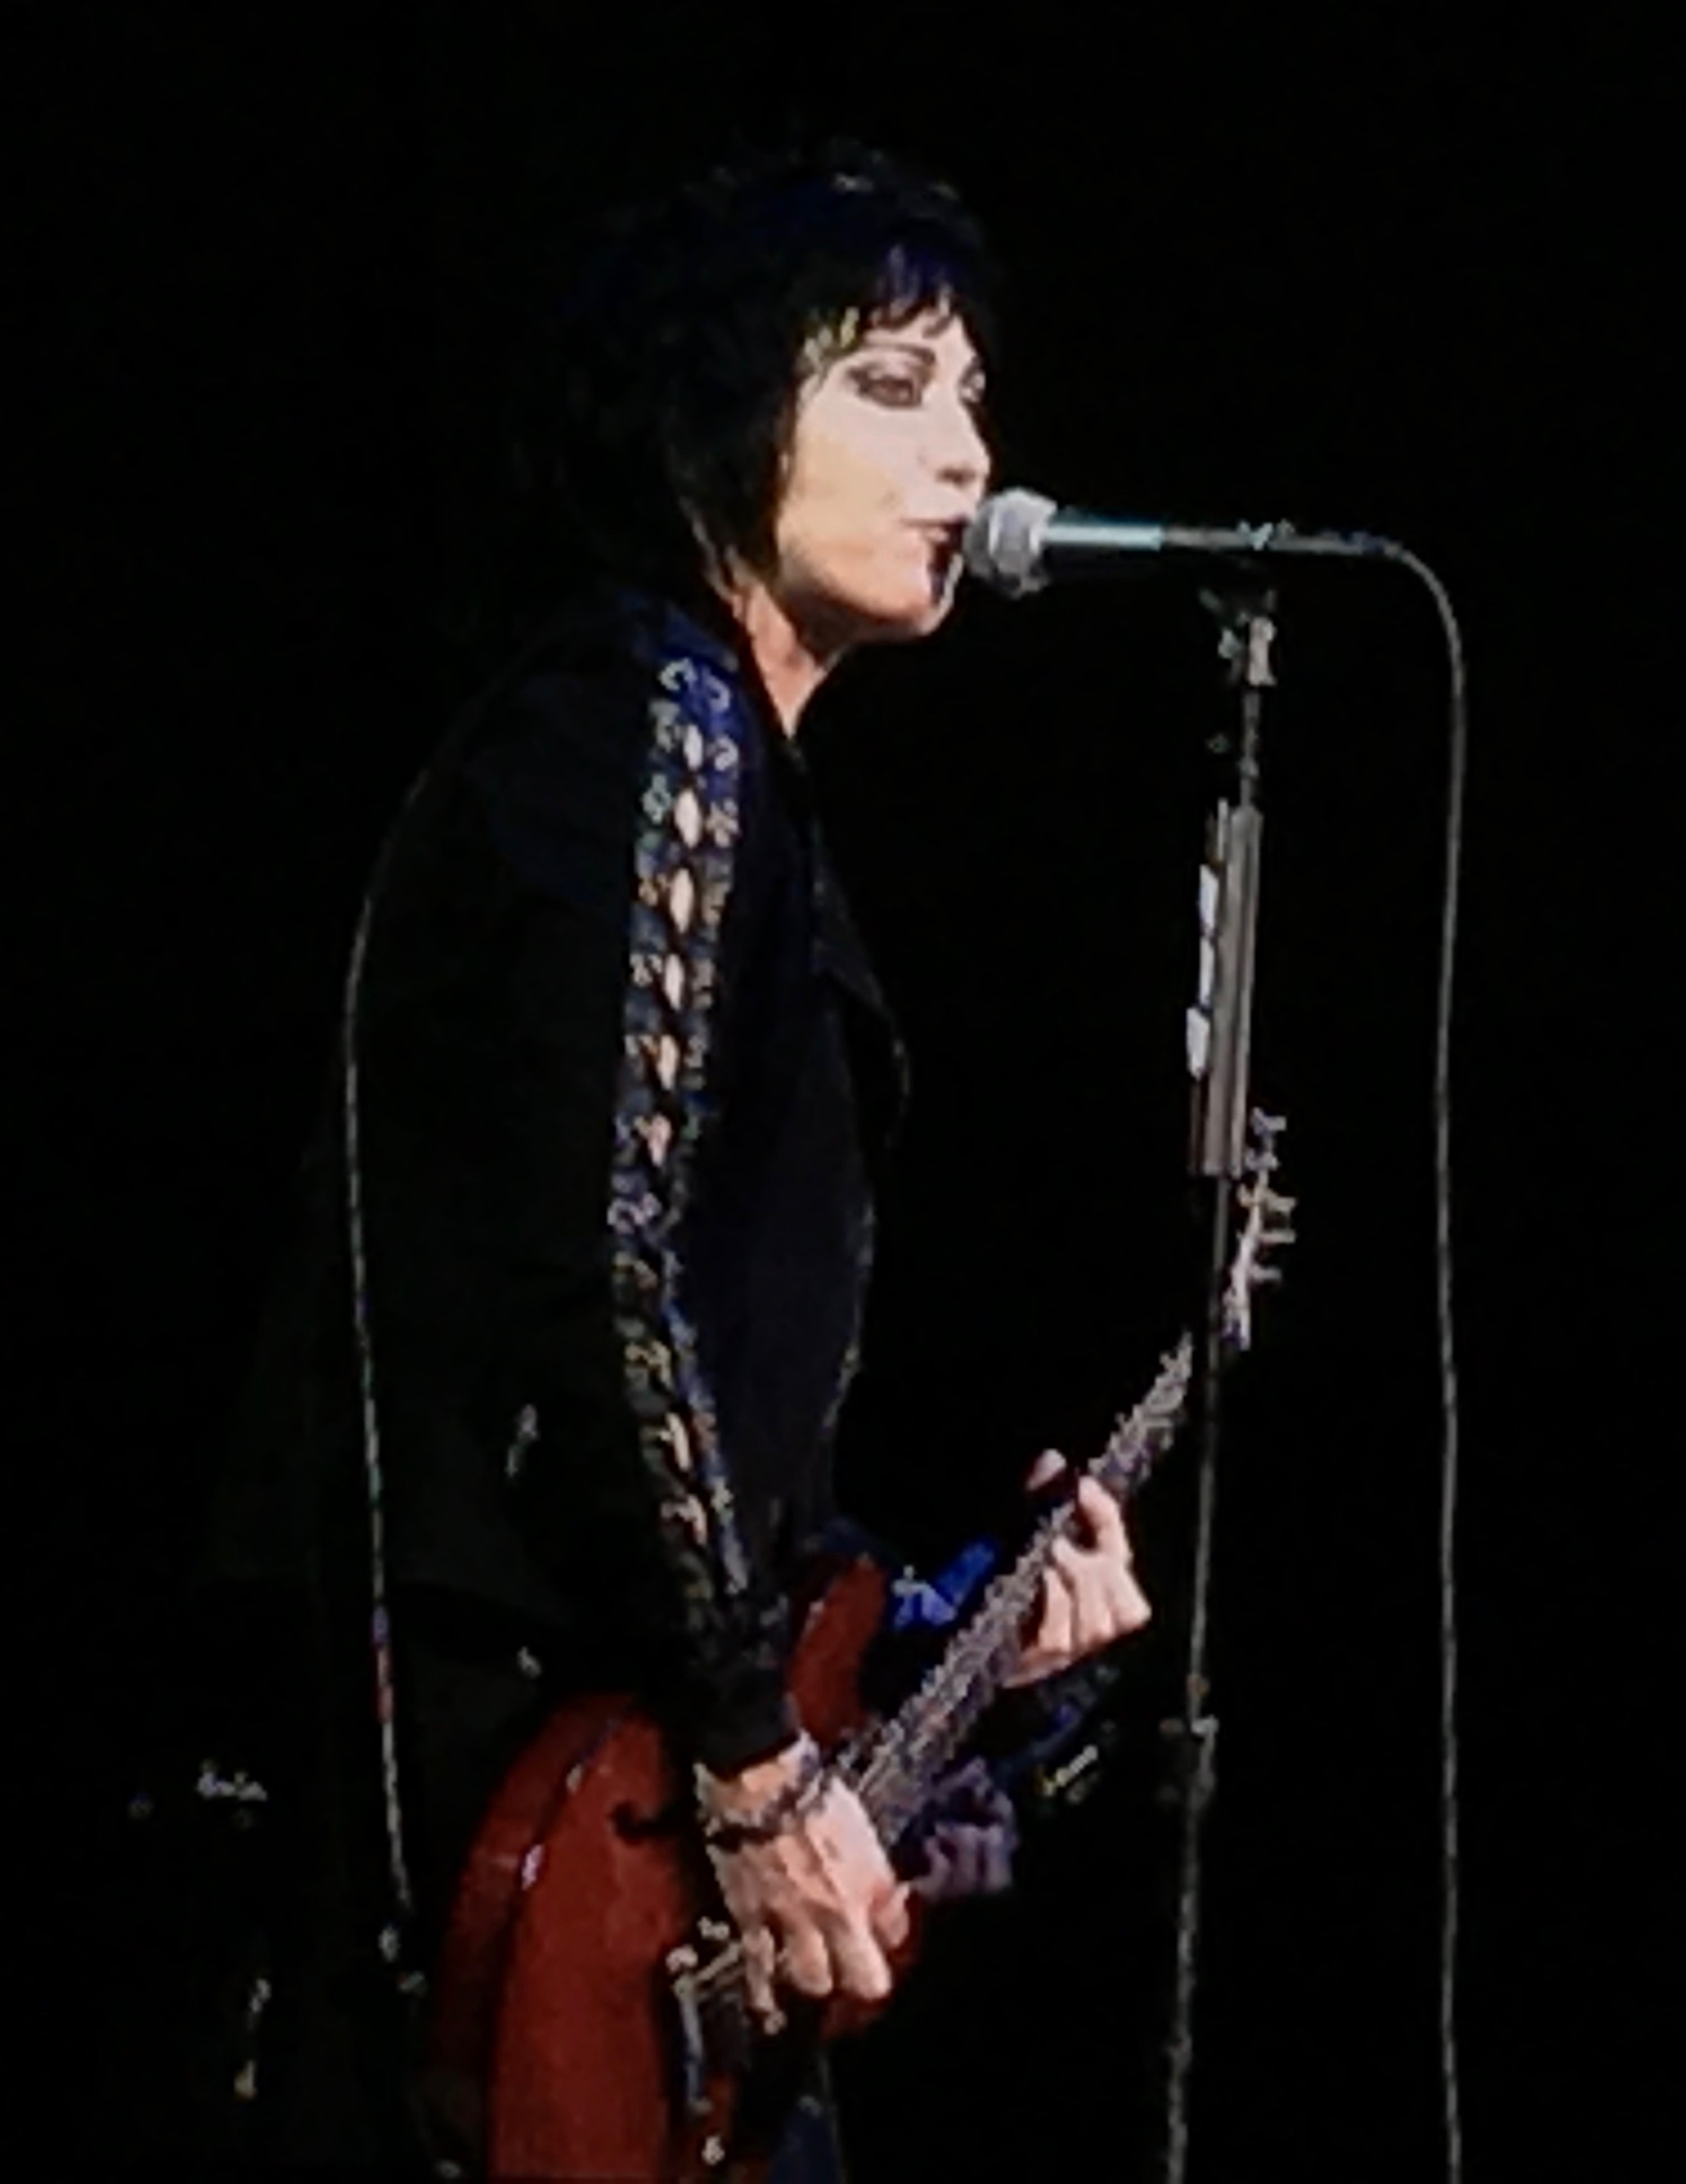 joan jett aug 2019